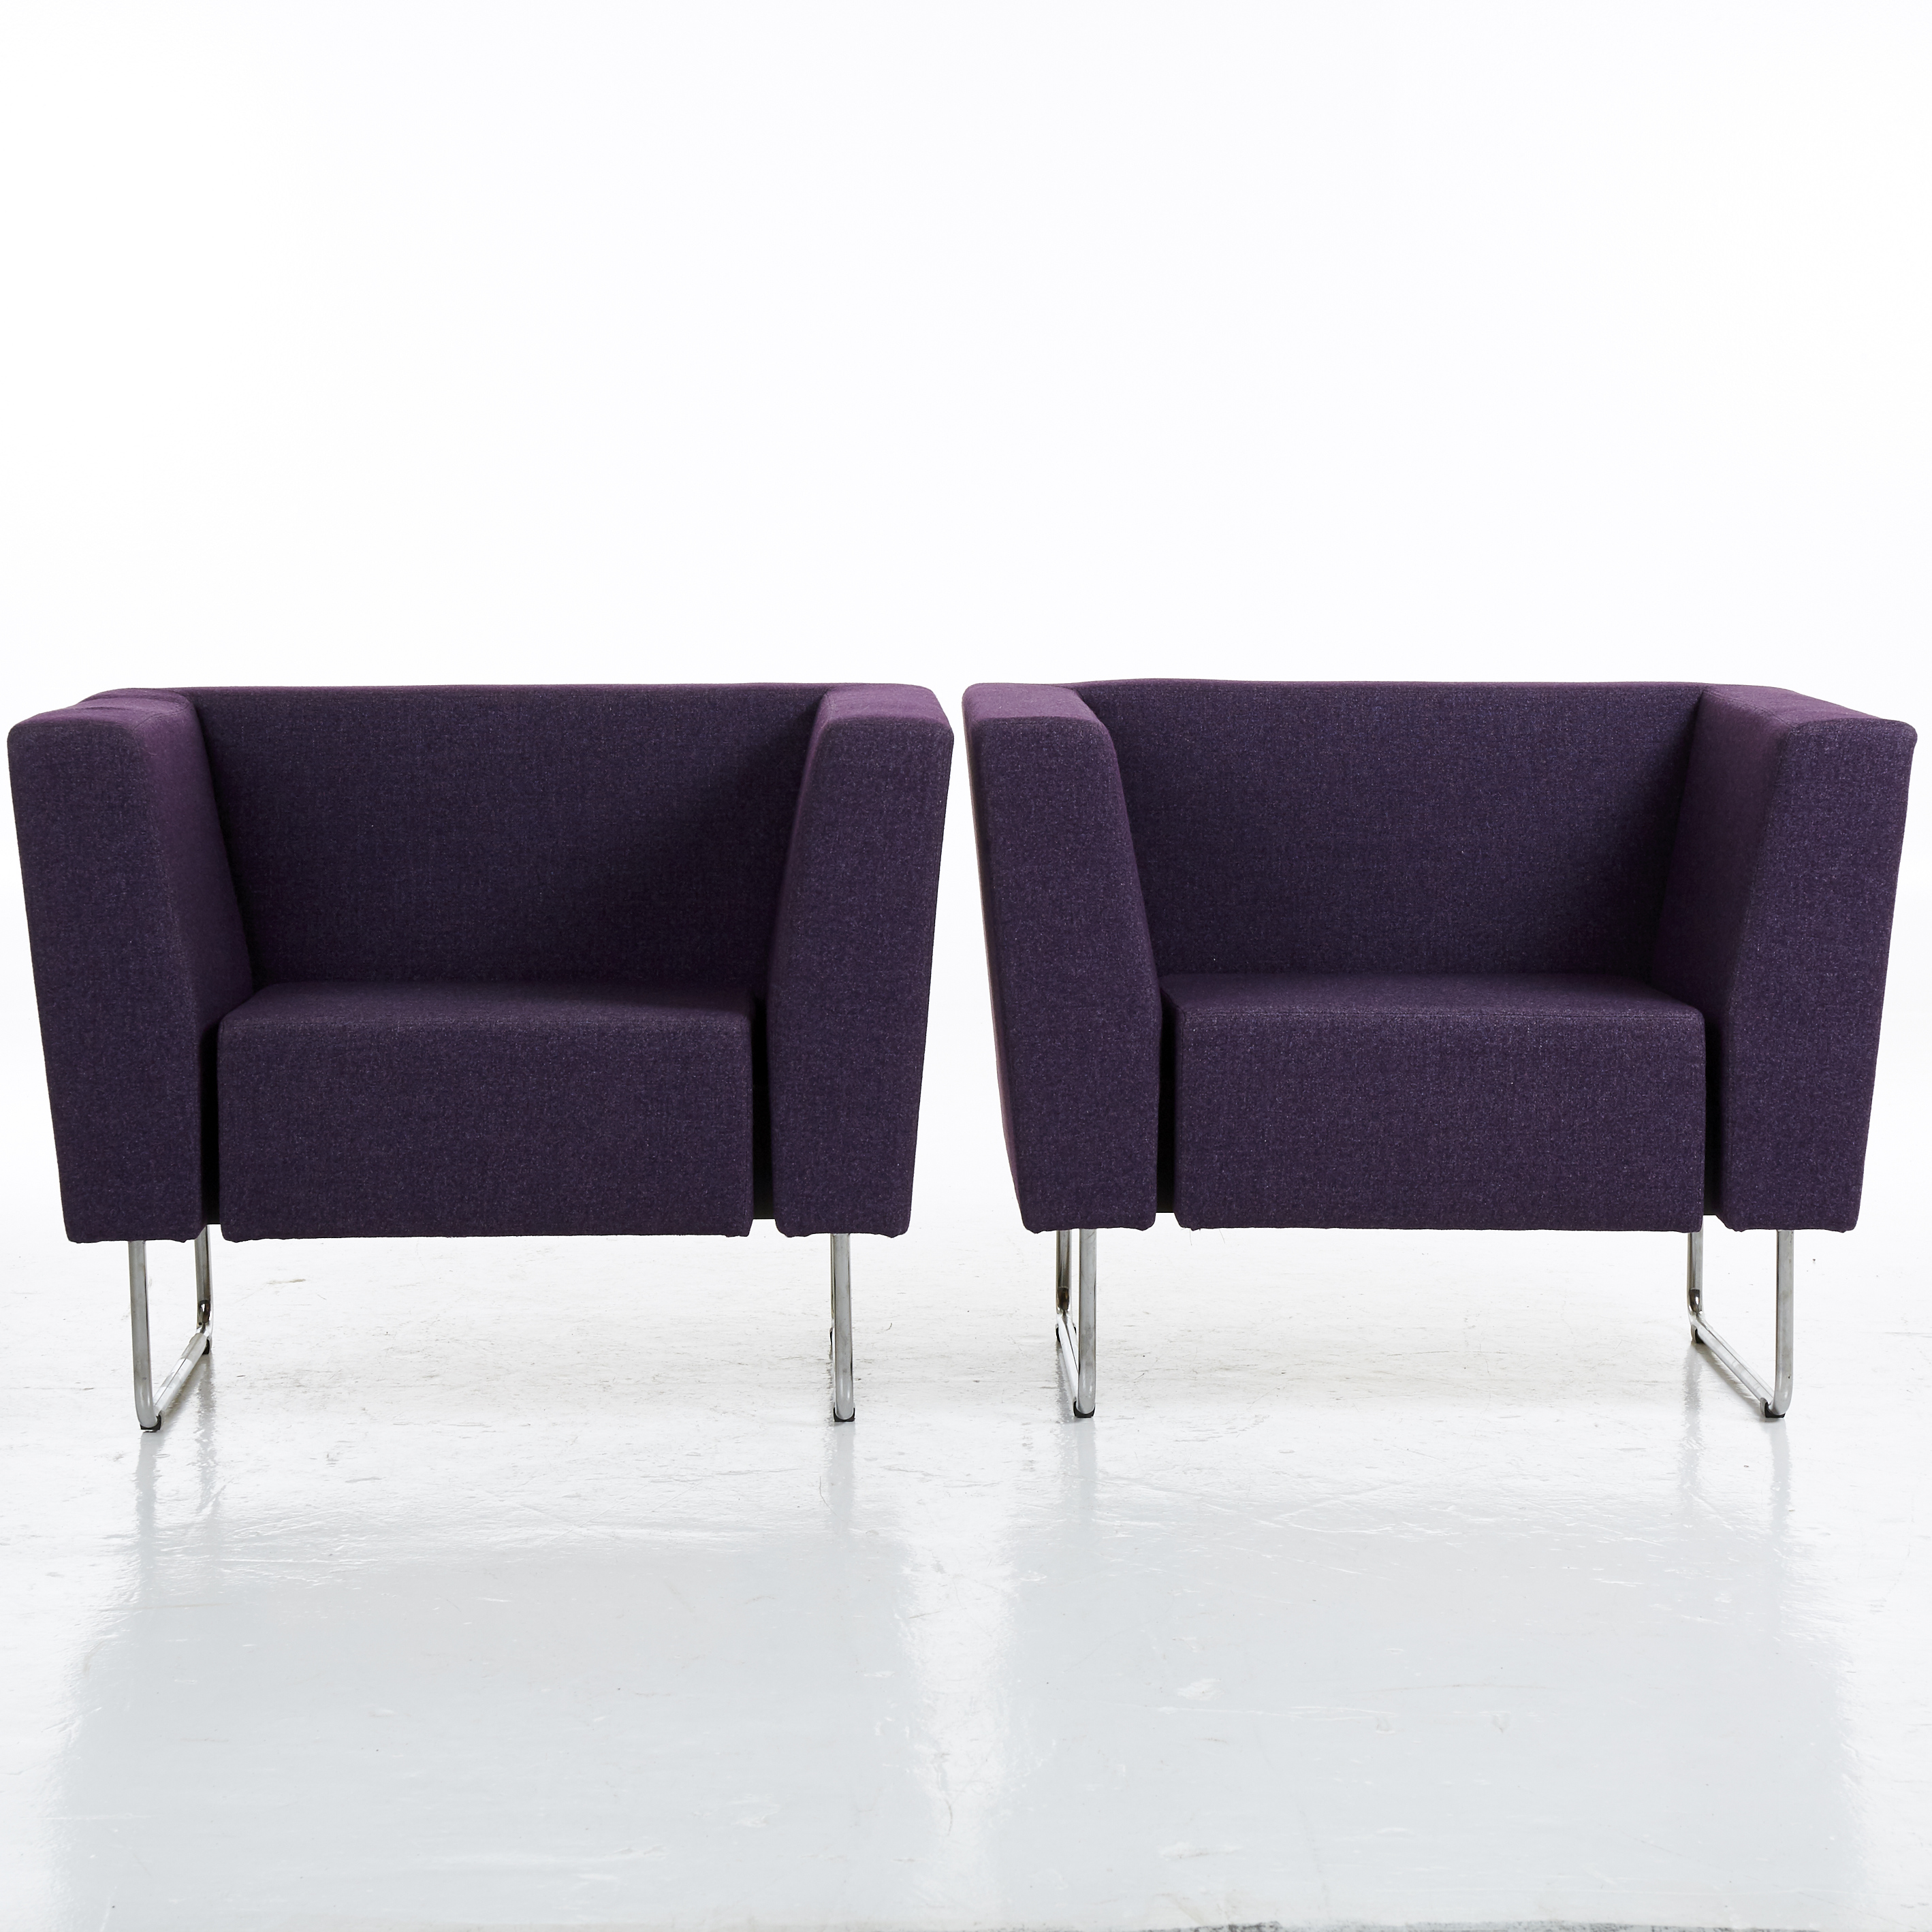 Swedese Sessel Sessel Swedese Gap Lounge